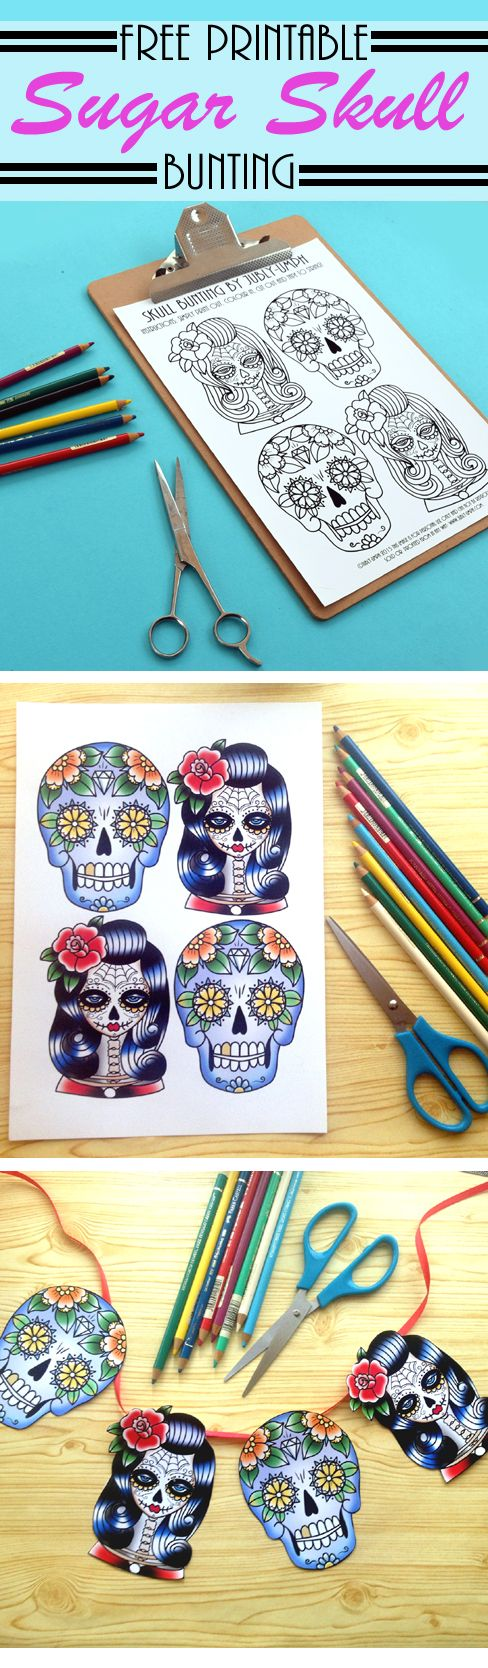 177 best cricut sugar skull images on Pinterest | Sugar skulls ...